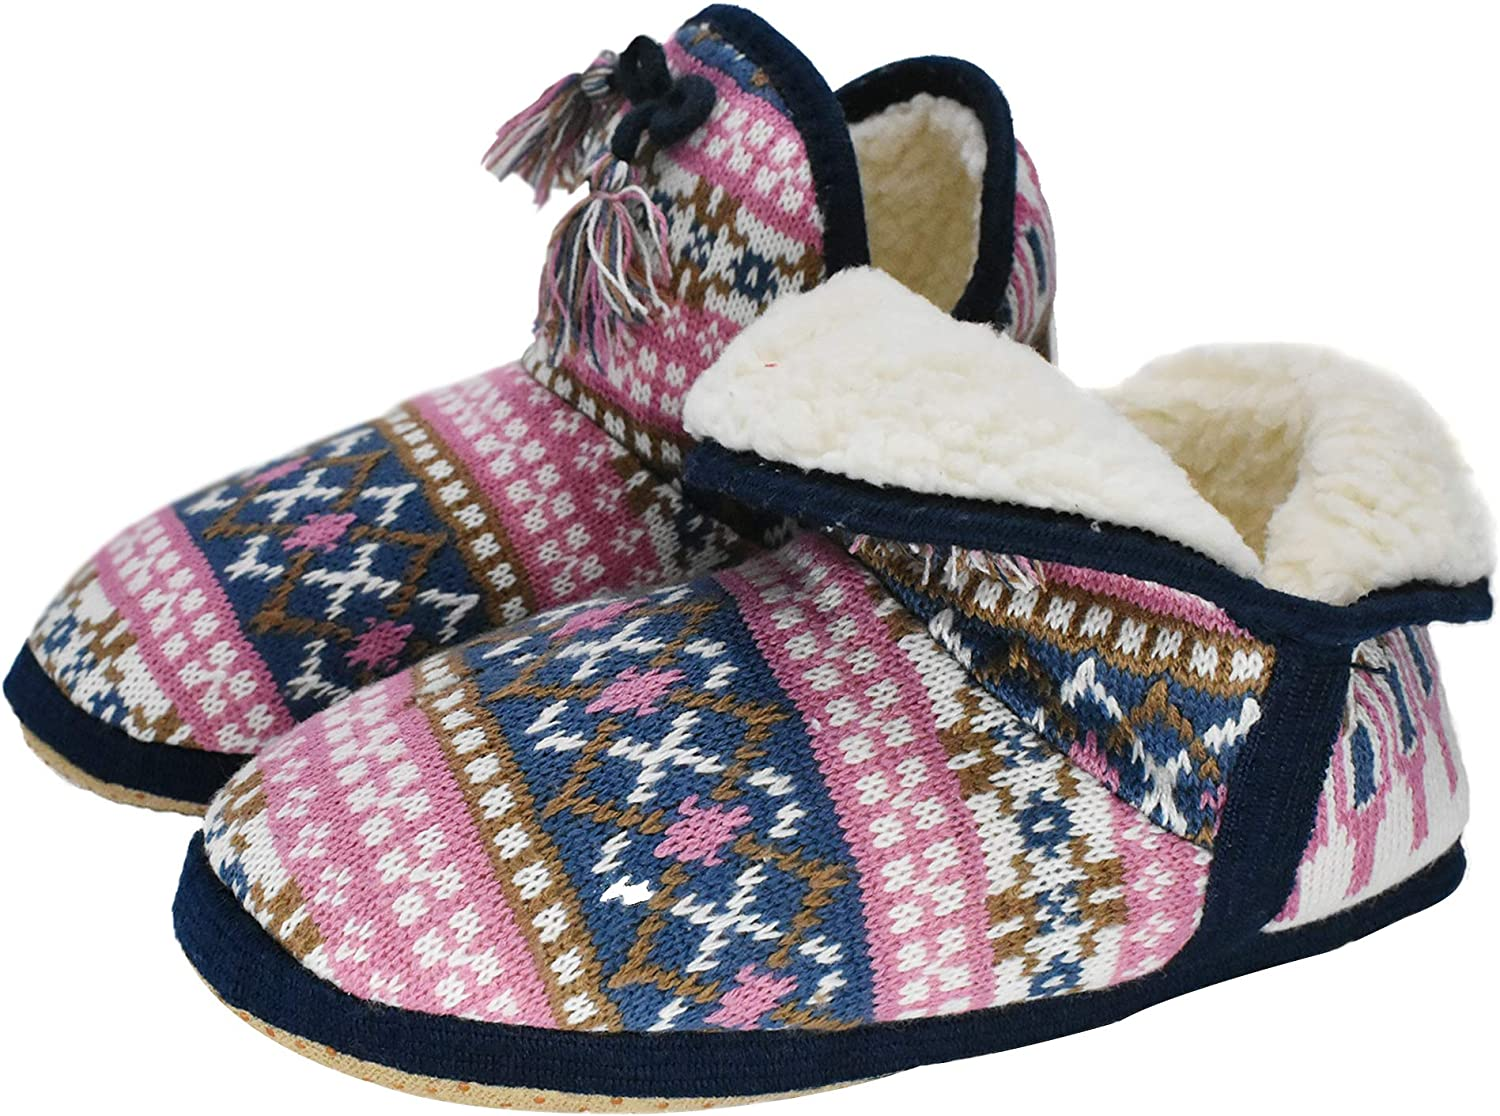 GPOS Womens Cashmere Knit House Slipper Booties Cotton Quilted Warm Indoor Ankle Boots Foam Insole Pink